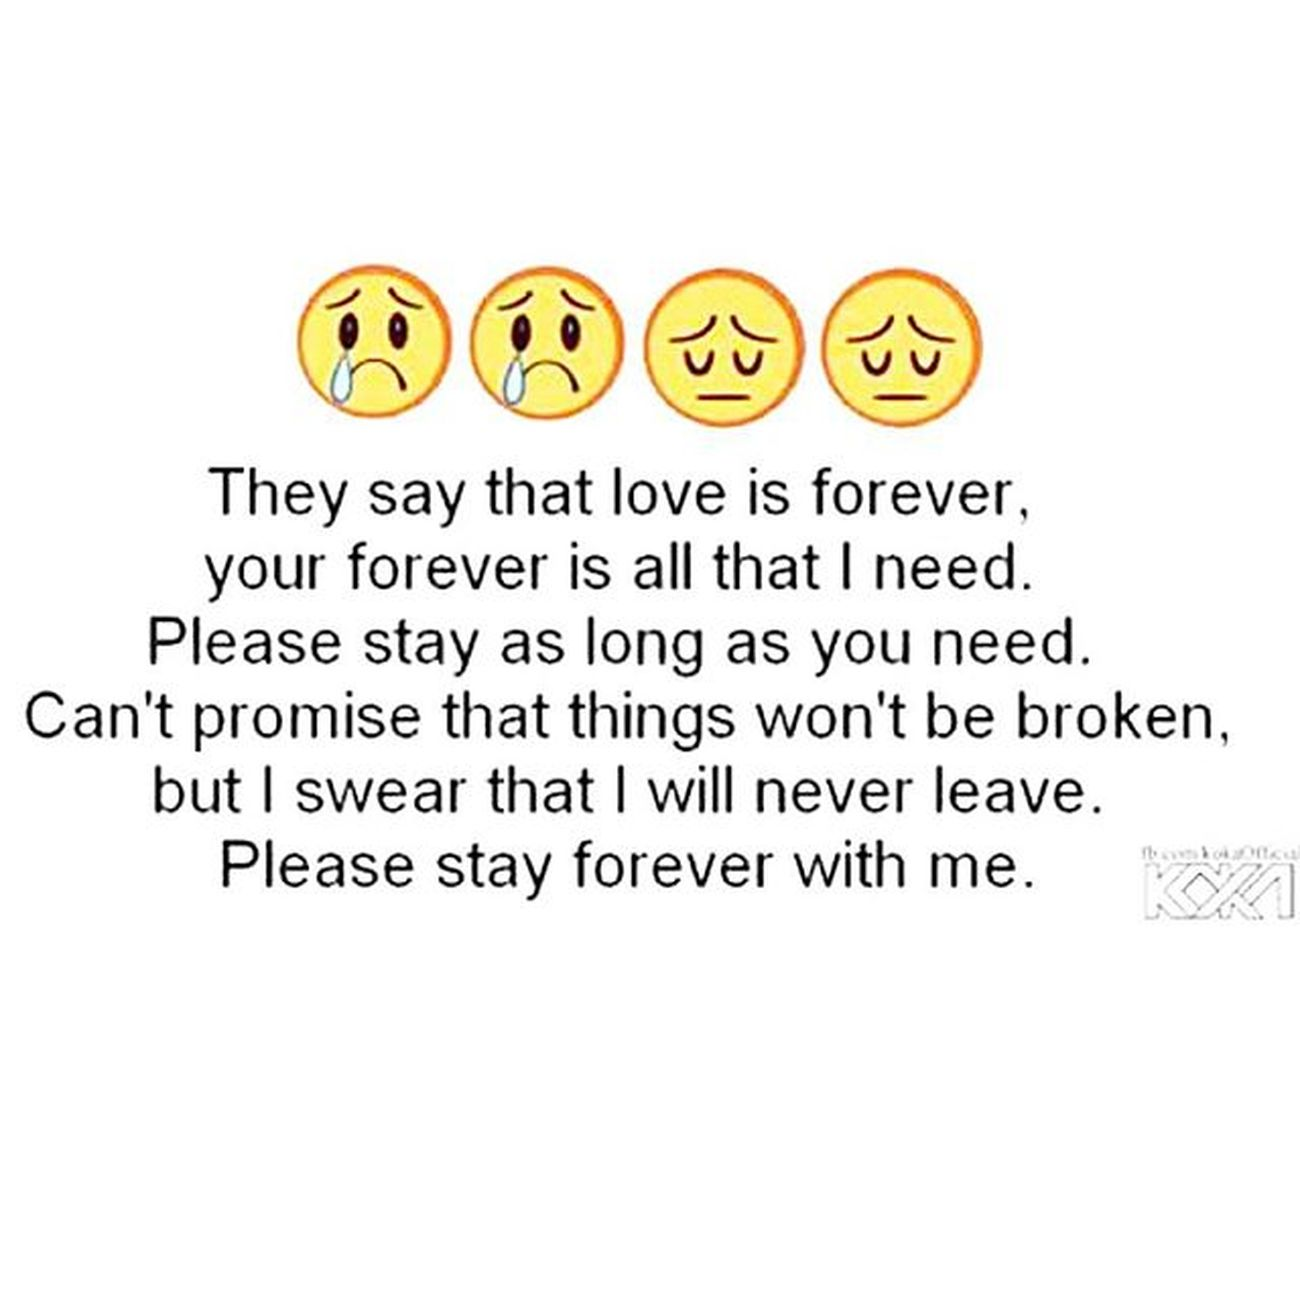 Pleasestay Staywithmeforever :(